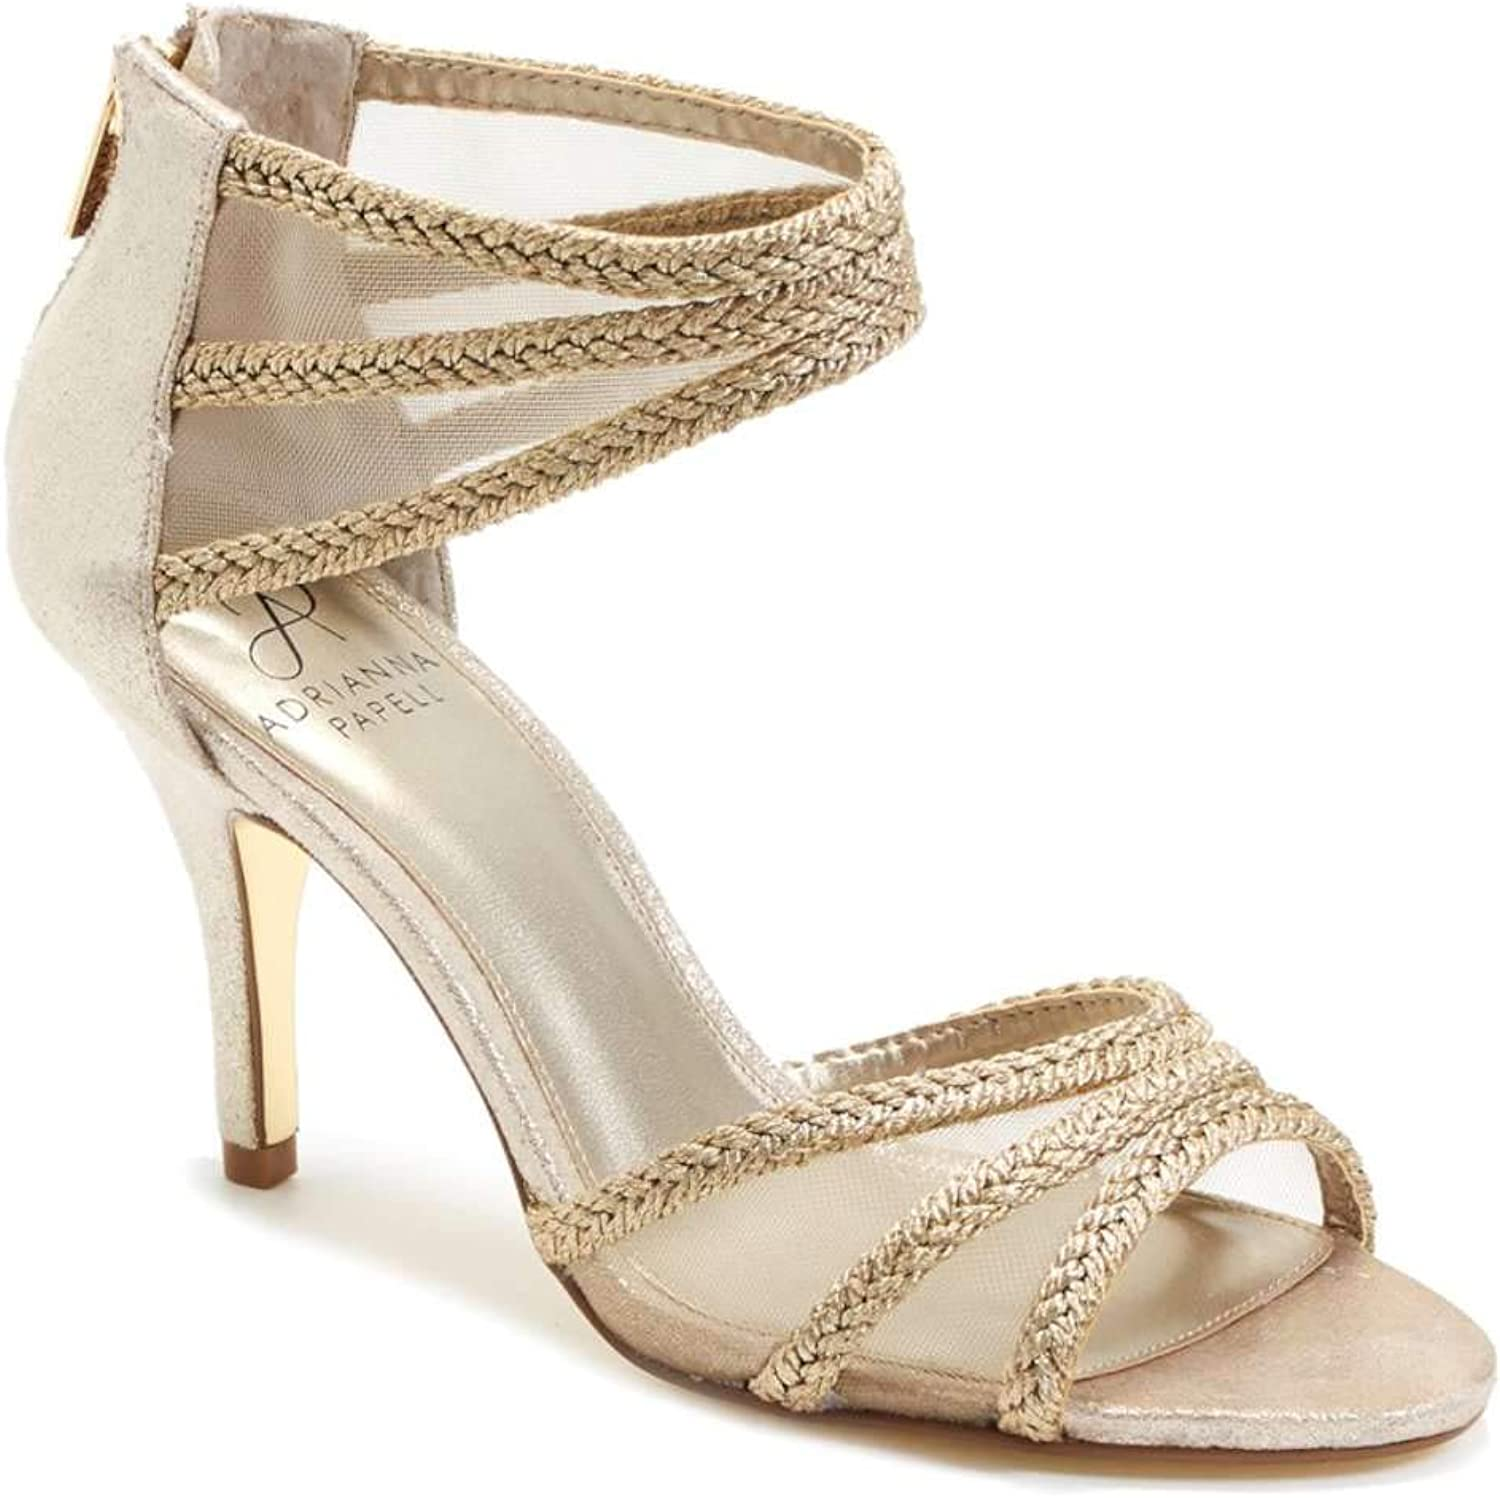 Adrianna Papell Womens Atlas Canvas Open Toe Ankle Strap Classic Pumps